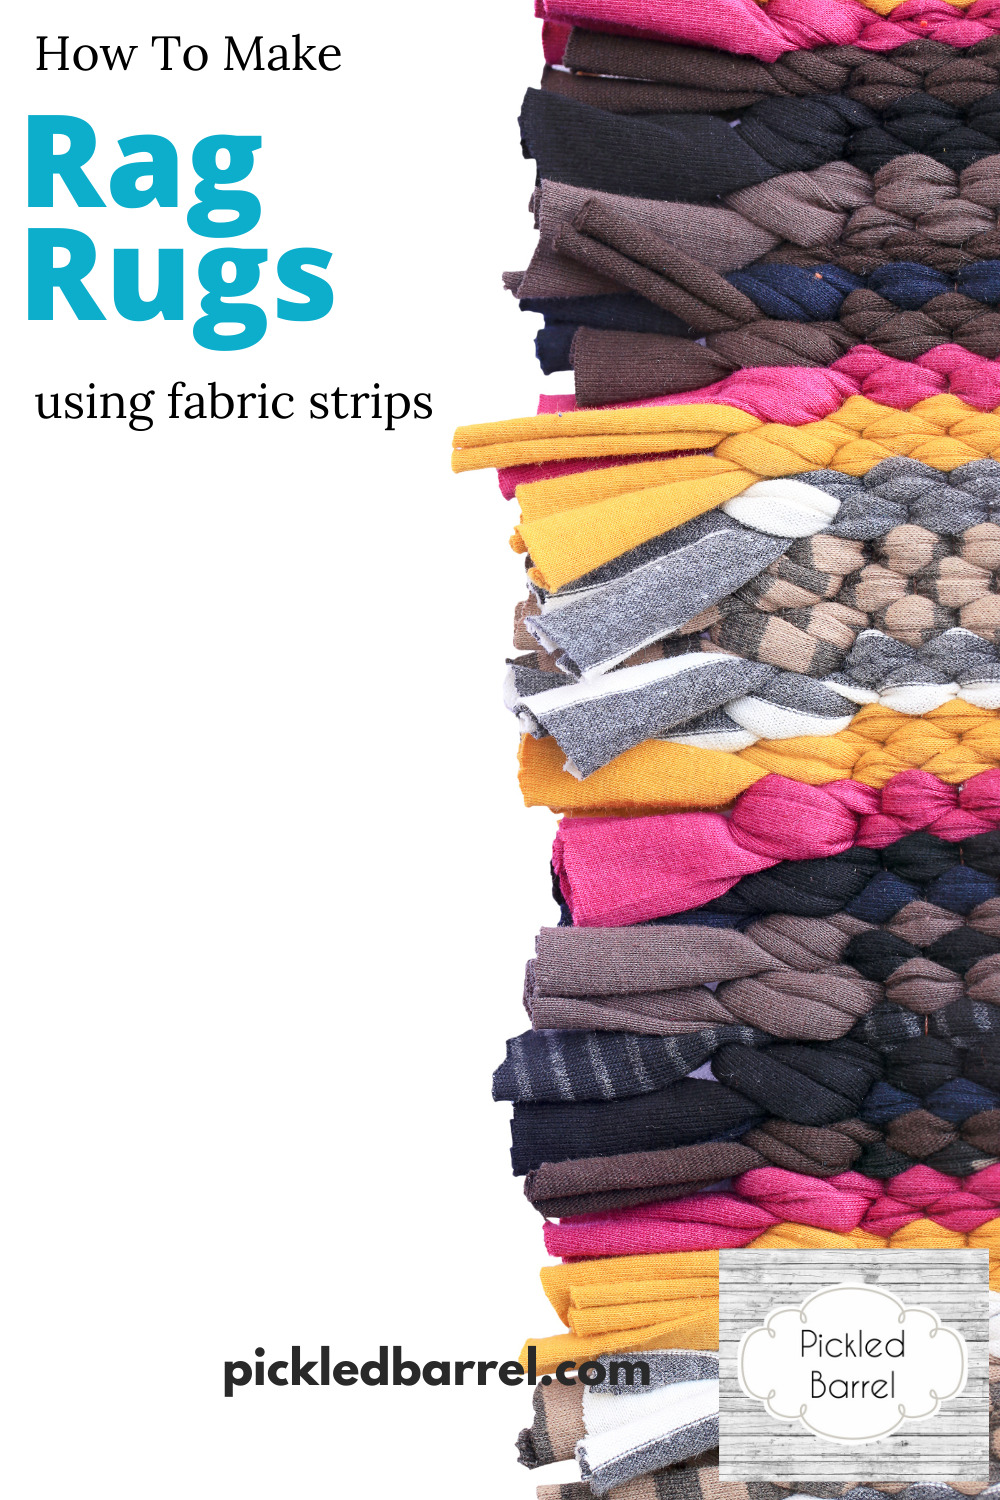 If you have a hardwood floor in your bedroom, a rag rug makes a perfect addition to not only keep the tootsies warm, but also to make the room warm and cozy, too! #pickledbarrelblog #ragrugs #diyragrugs #ragrugsdiy